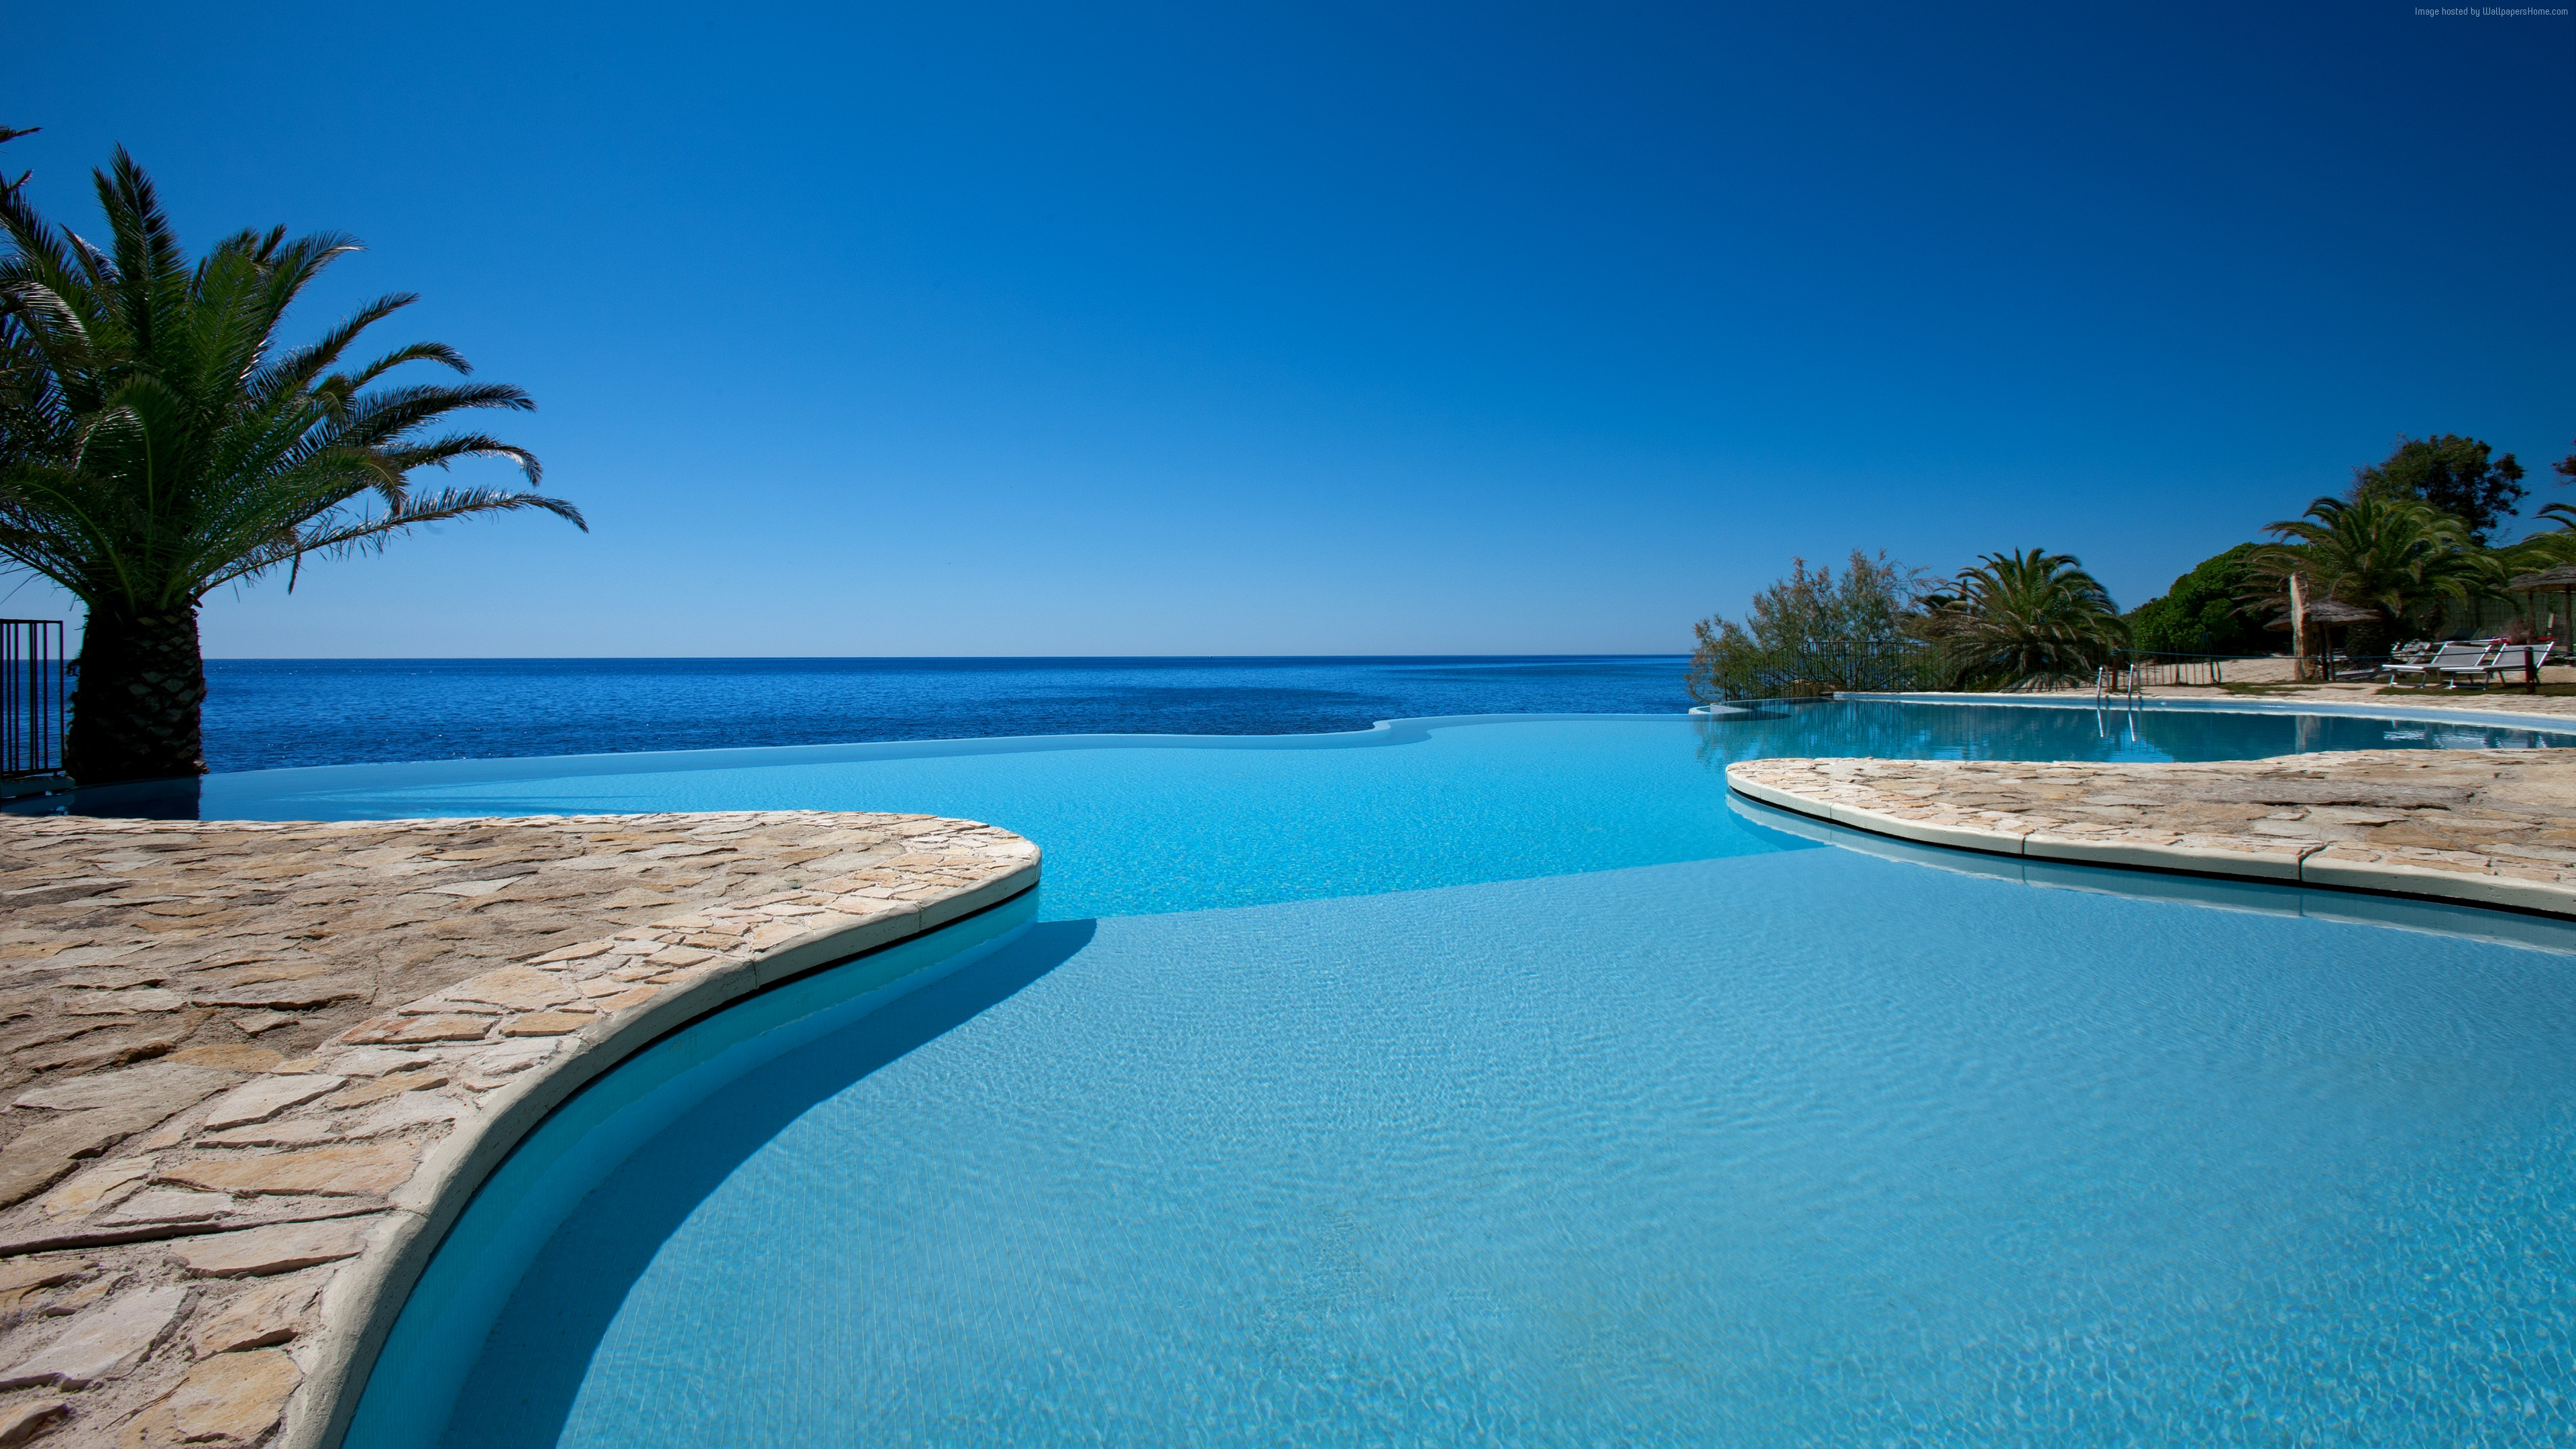 Wallpaper Hotel Costa dei Fiori, 5k, 4k wallpaper, Sardinia, Italy, infinity pool, pool, travel, tourism, Travel